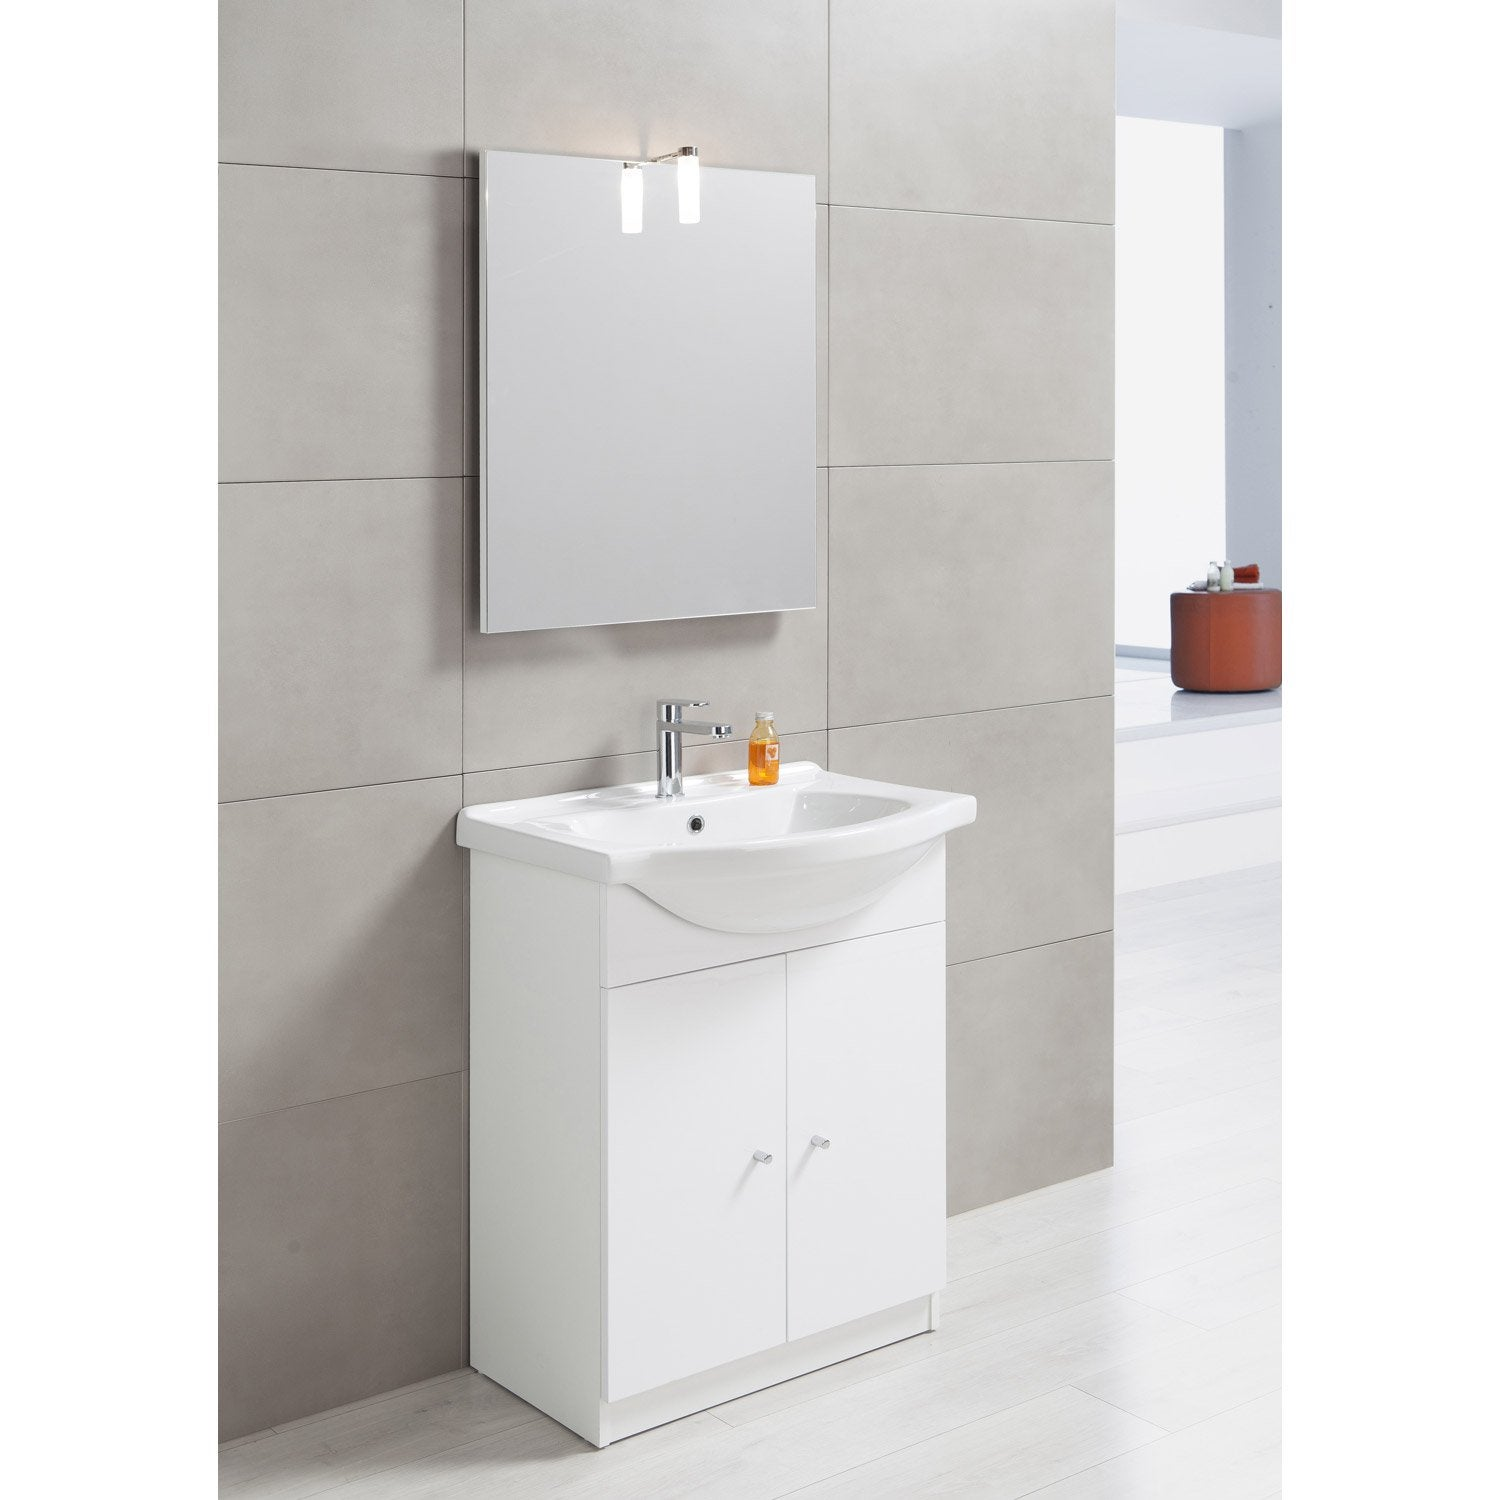 Meuble vasque 65 cm bianca leroy merlin for Evier salle de bain leroy merlin